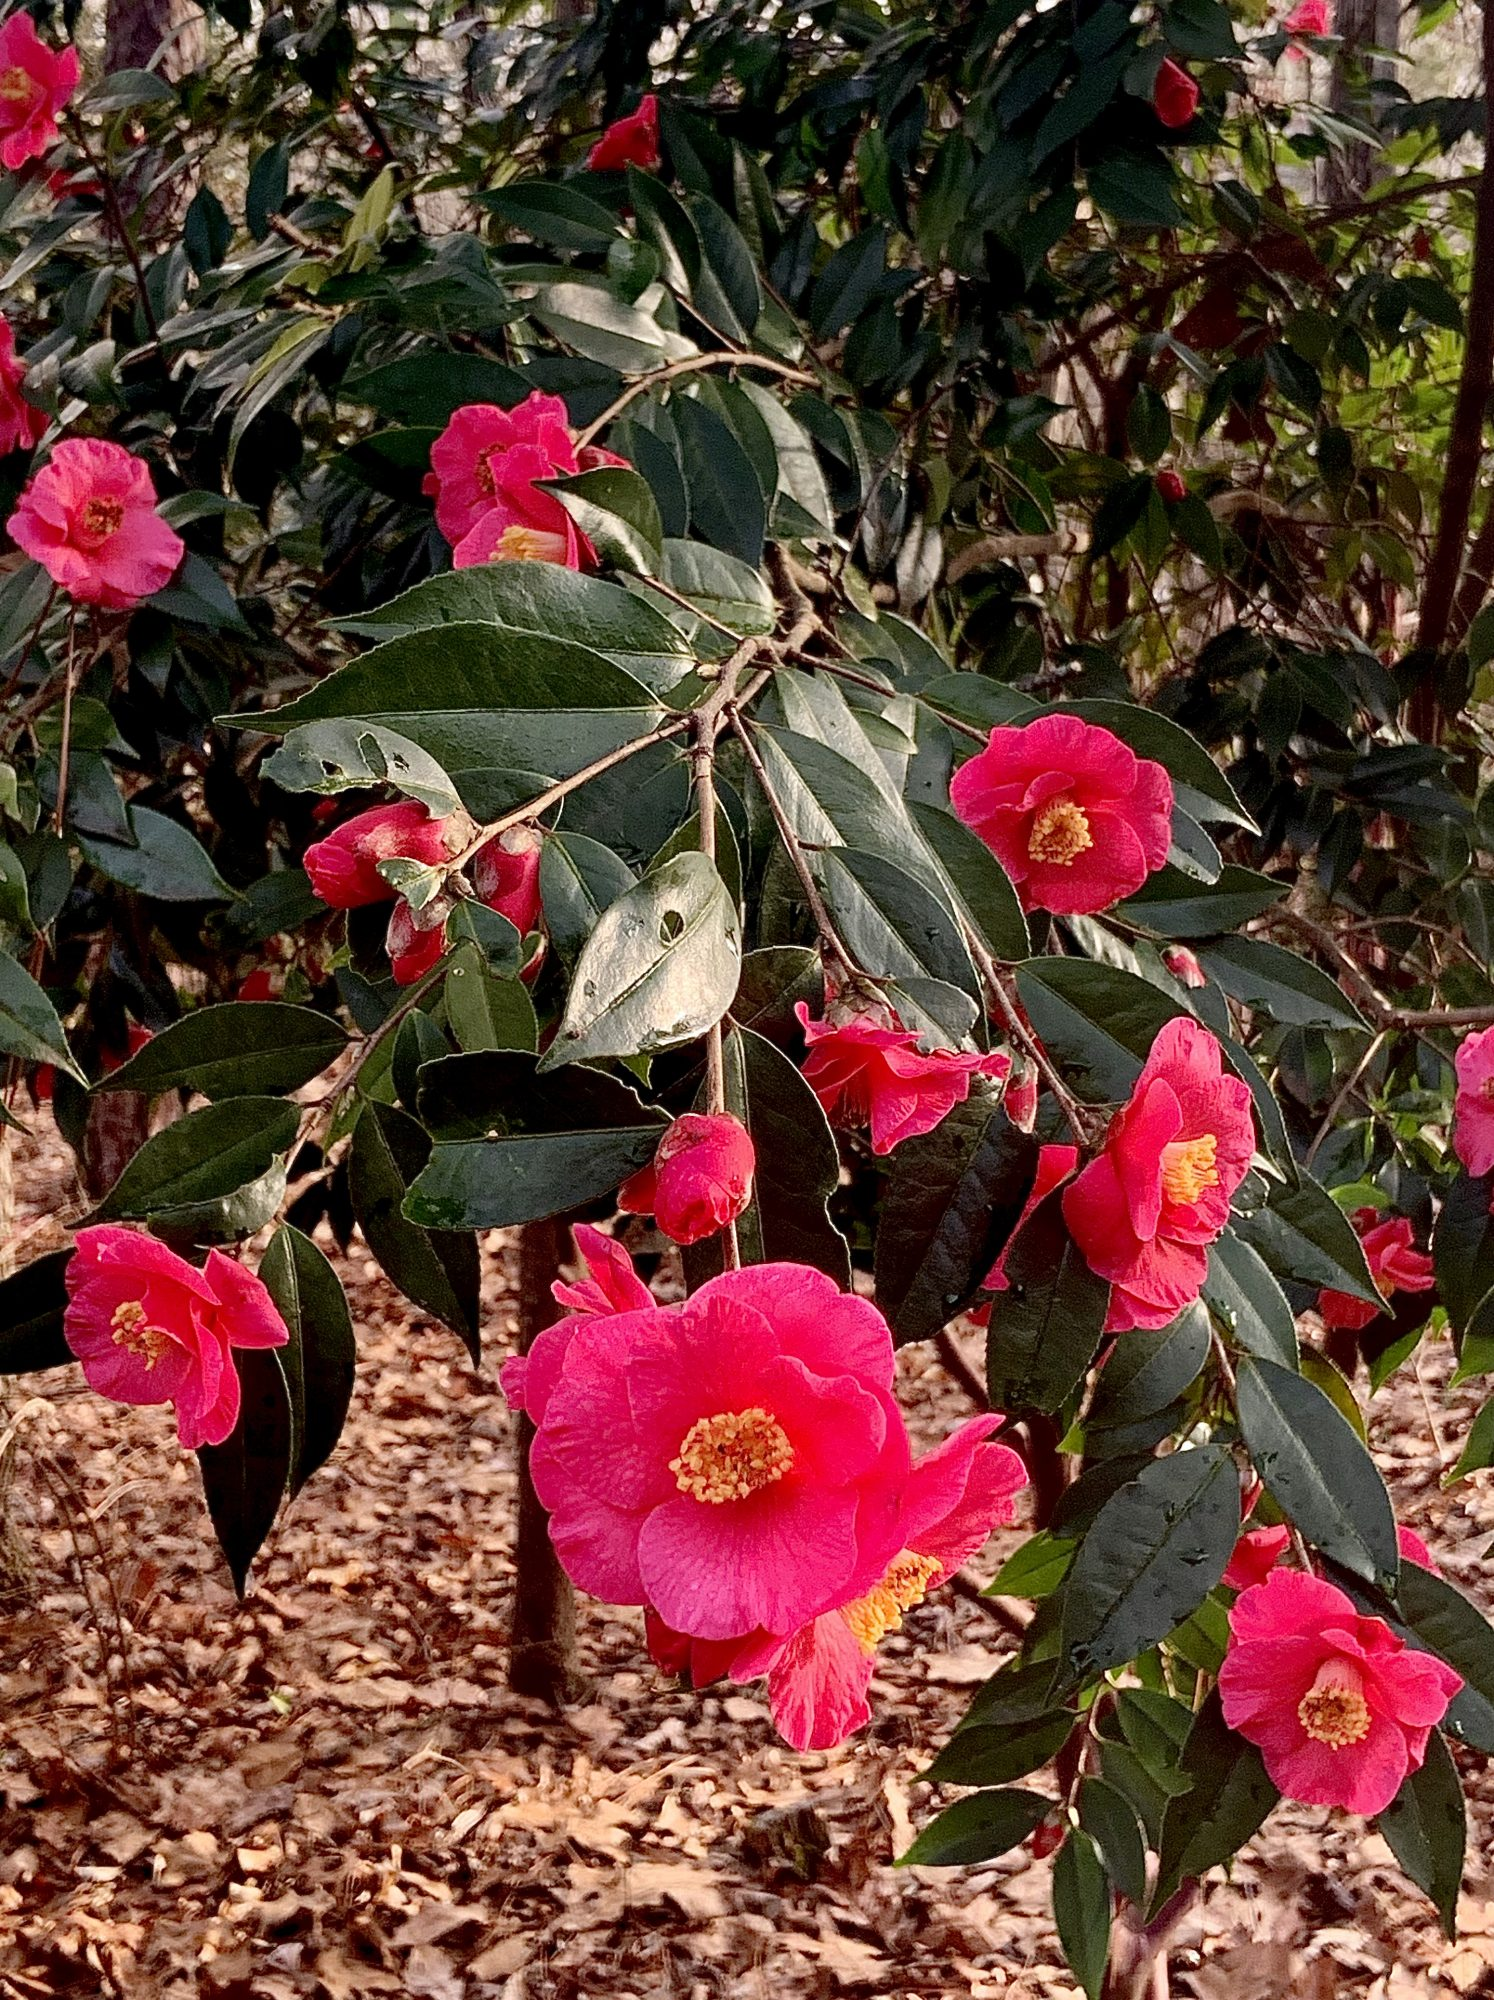 Camellia shrub in bloom